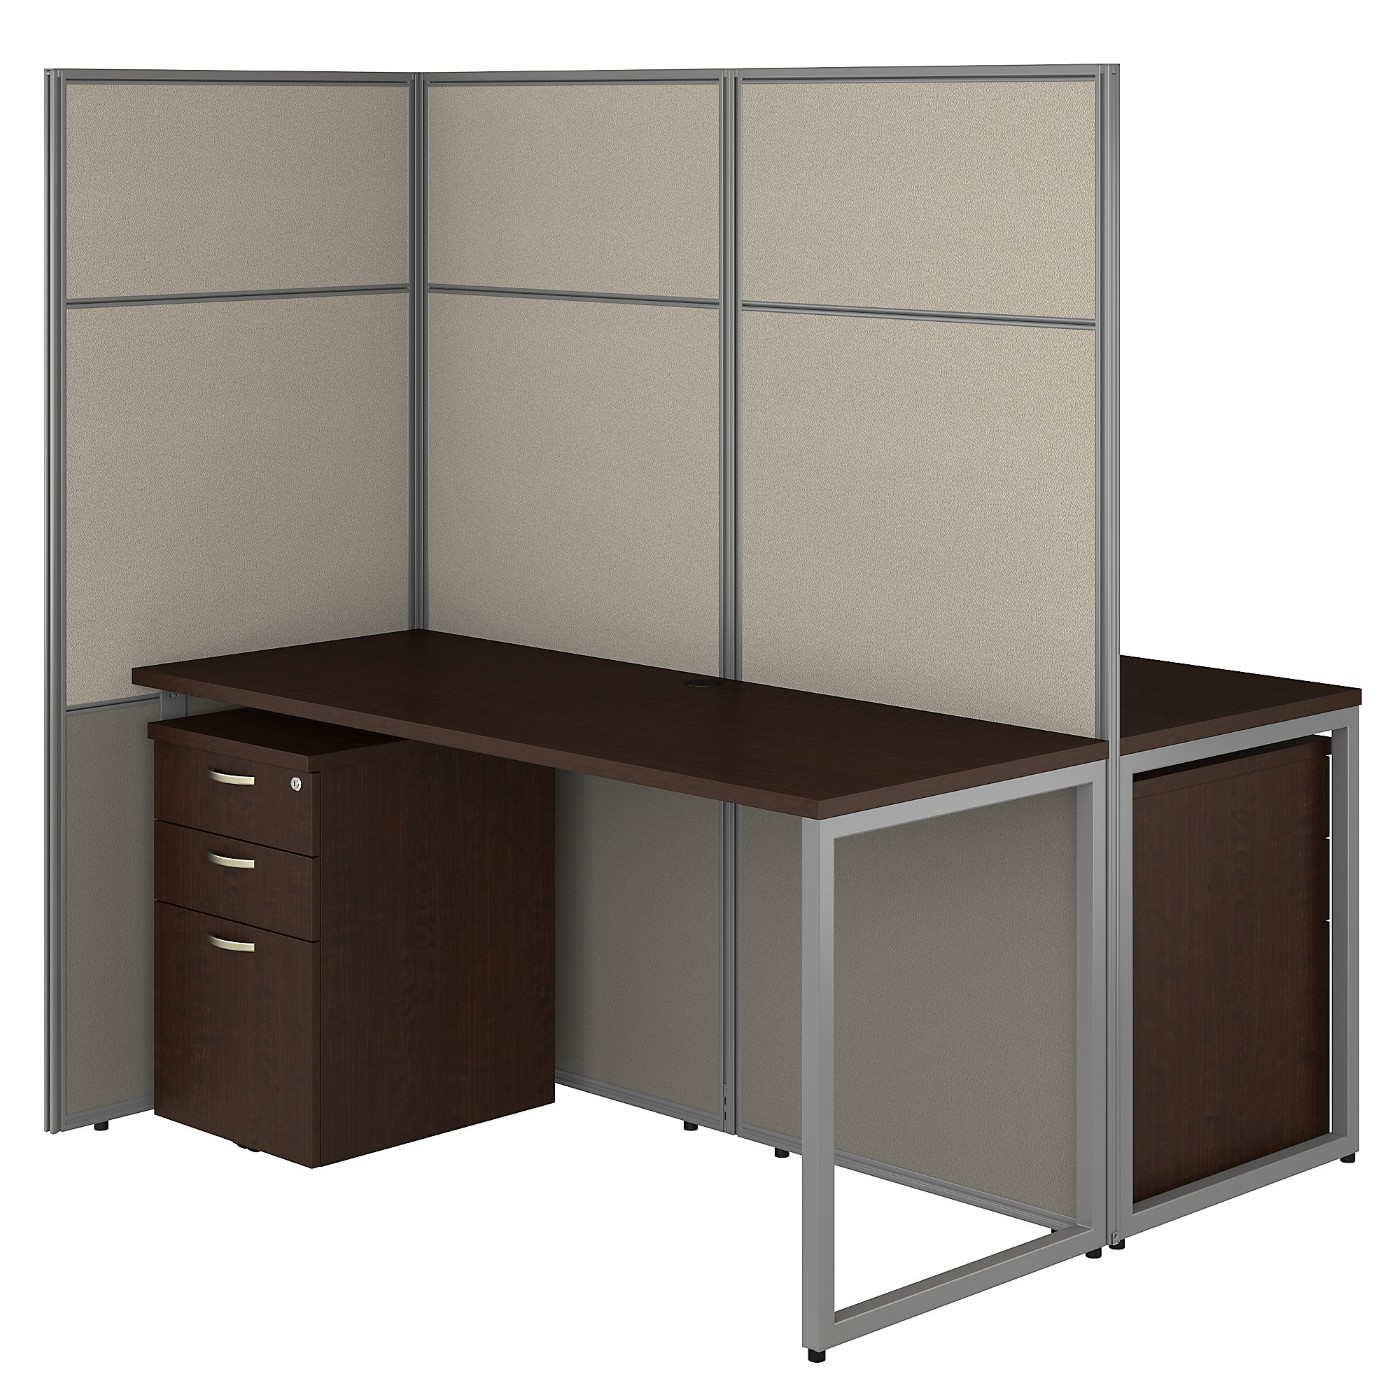 BUSH BUSINESS FURNITURE EASY OFFICE 60W 2 PERSON CUBICLE DESK WITH FILE CABINETS AND 66H PANELS. FREE SHIPPING 30H x 72L x 72W.